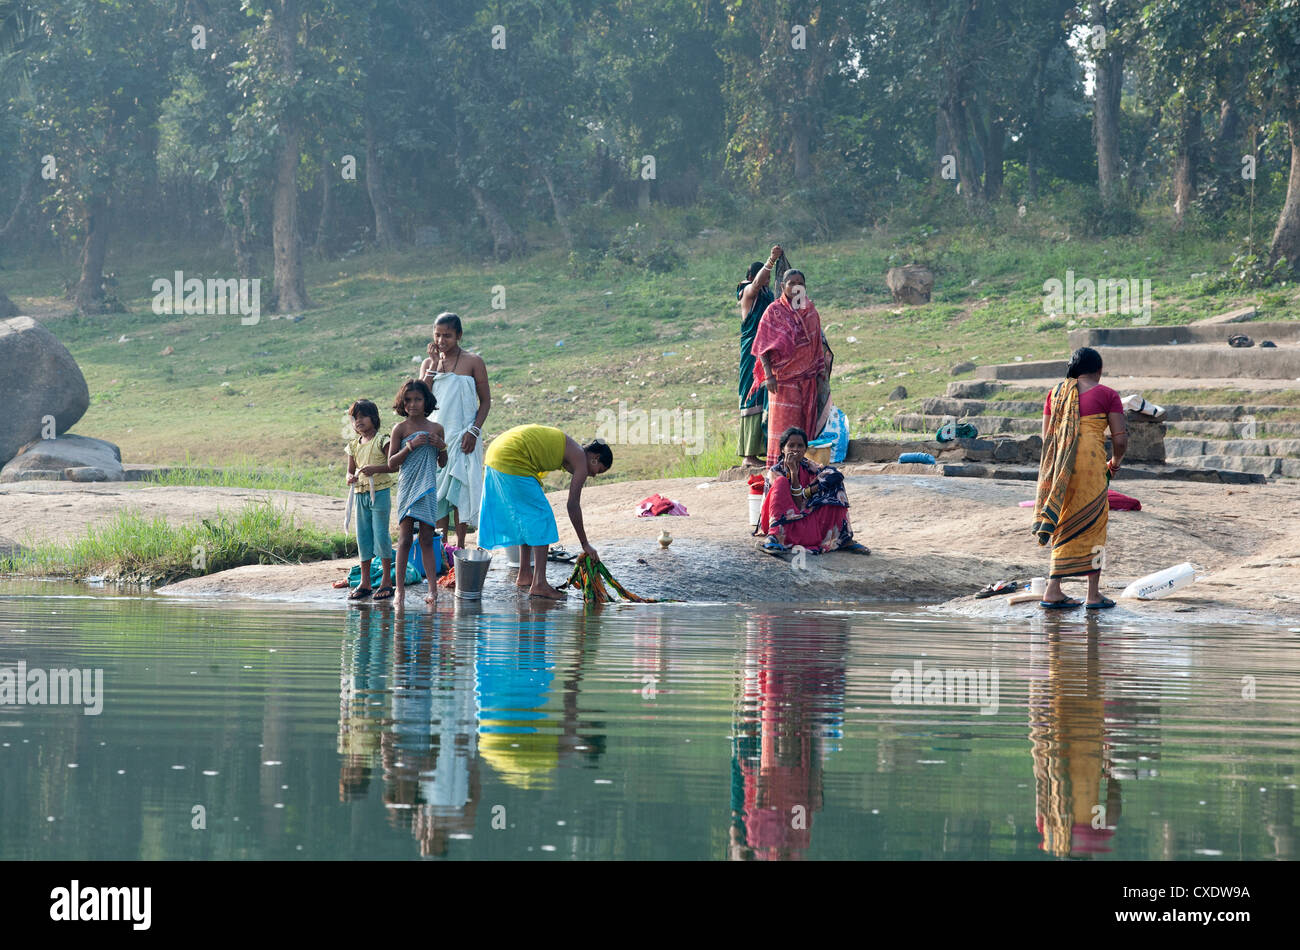 Women washing clothes on the ghats of the  River Mahanadi, reflected in the water, Orissa, India, Asia - Stock Image